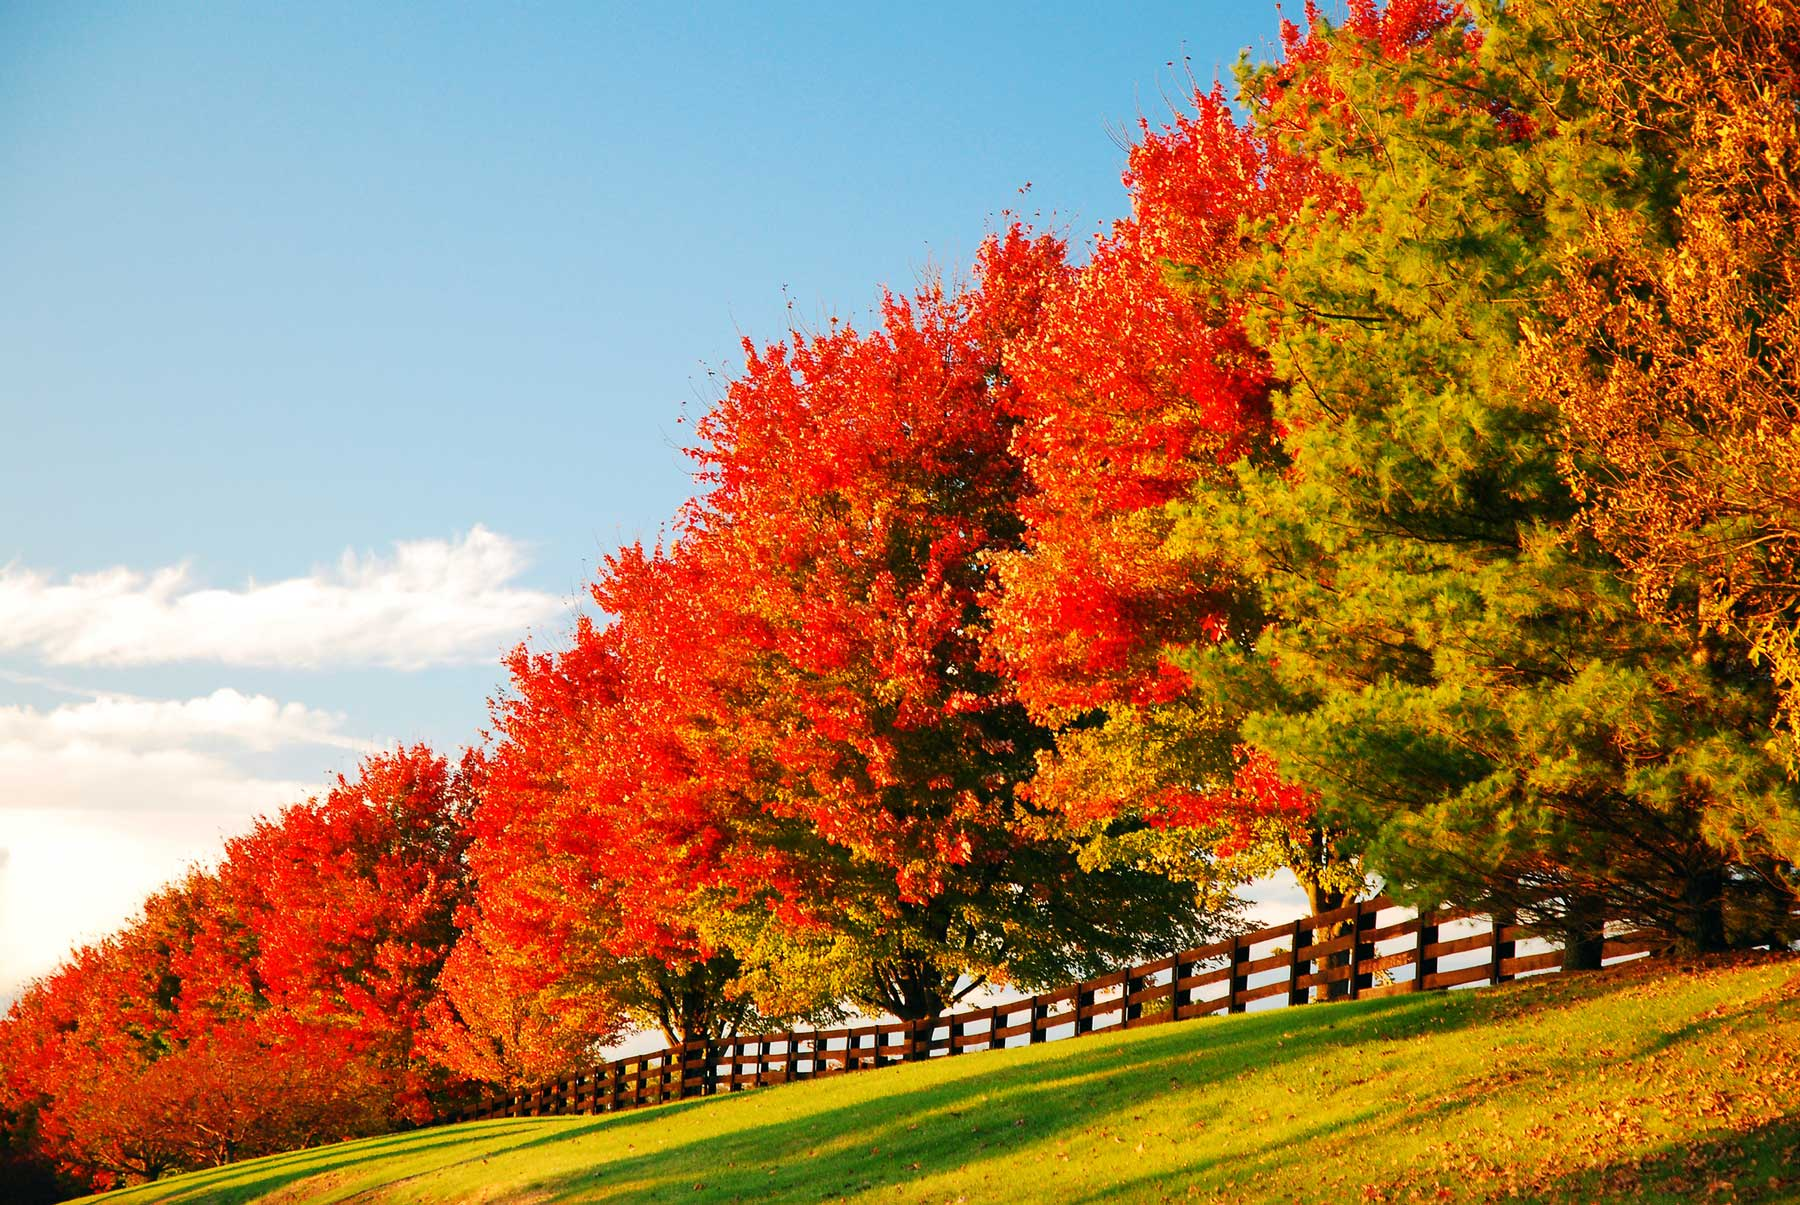 Brilliant reds and oranges burst onto fall trees along the edge of a farm